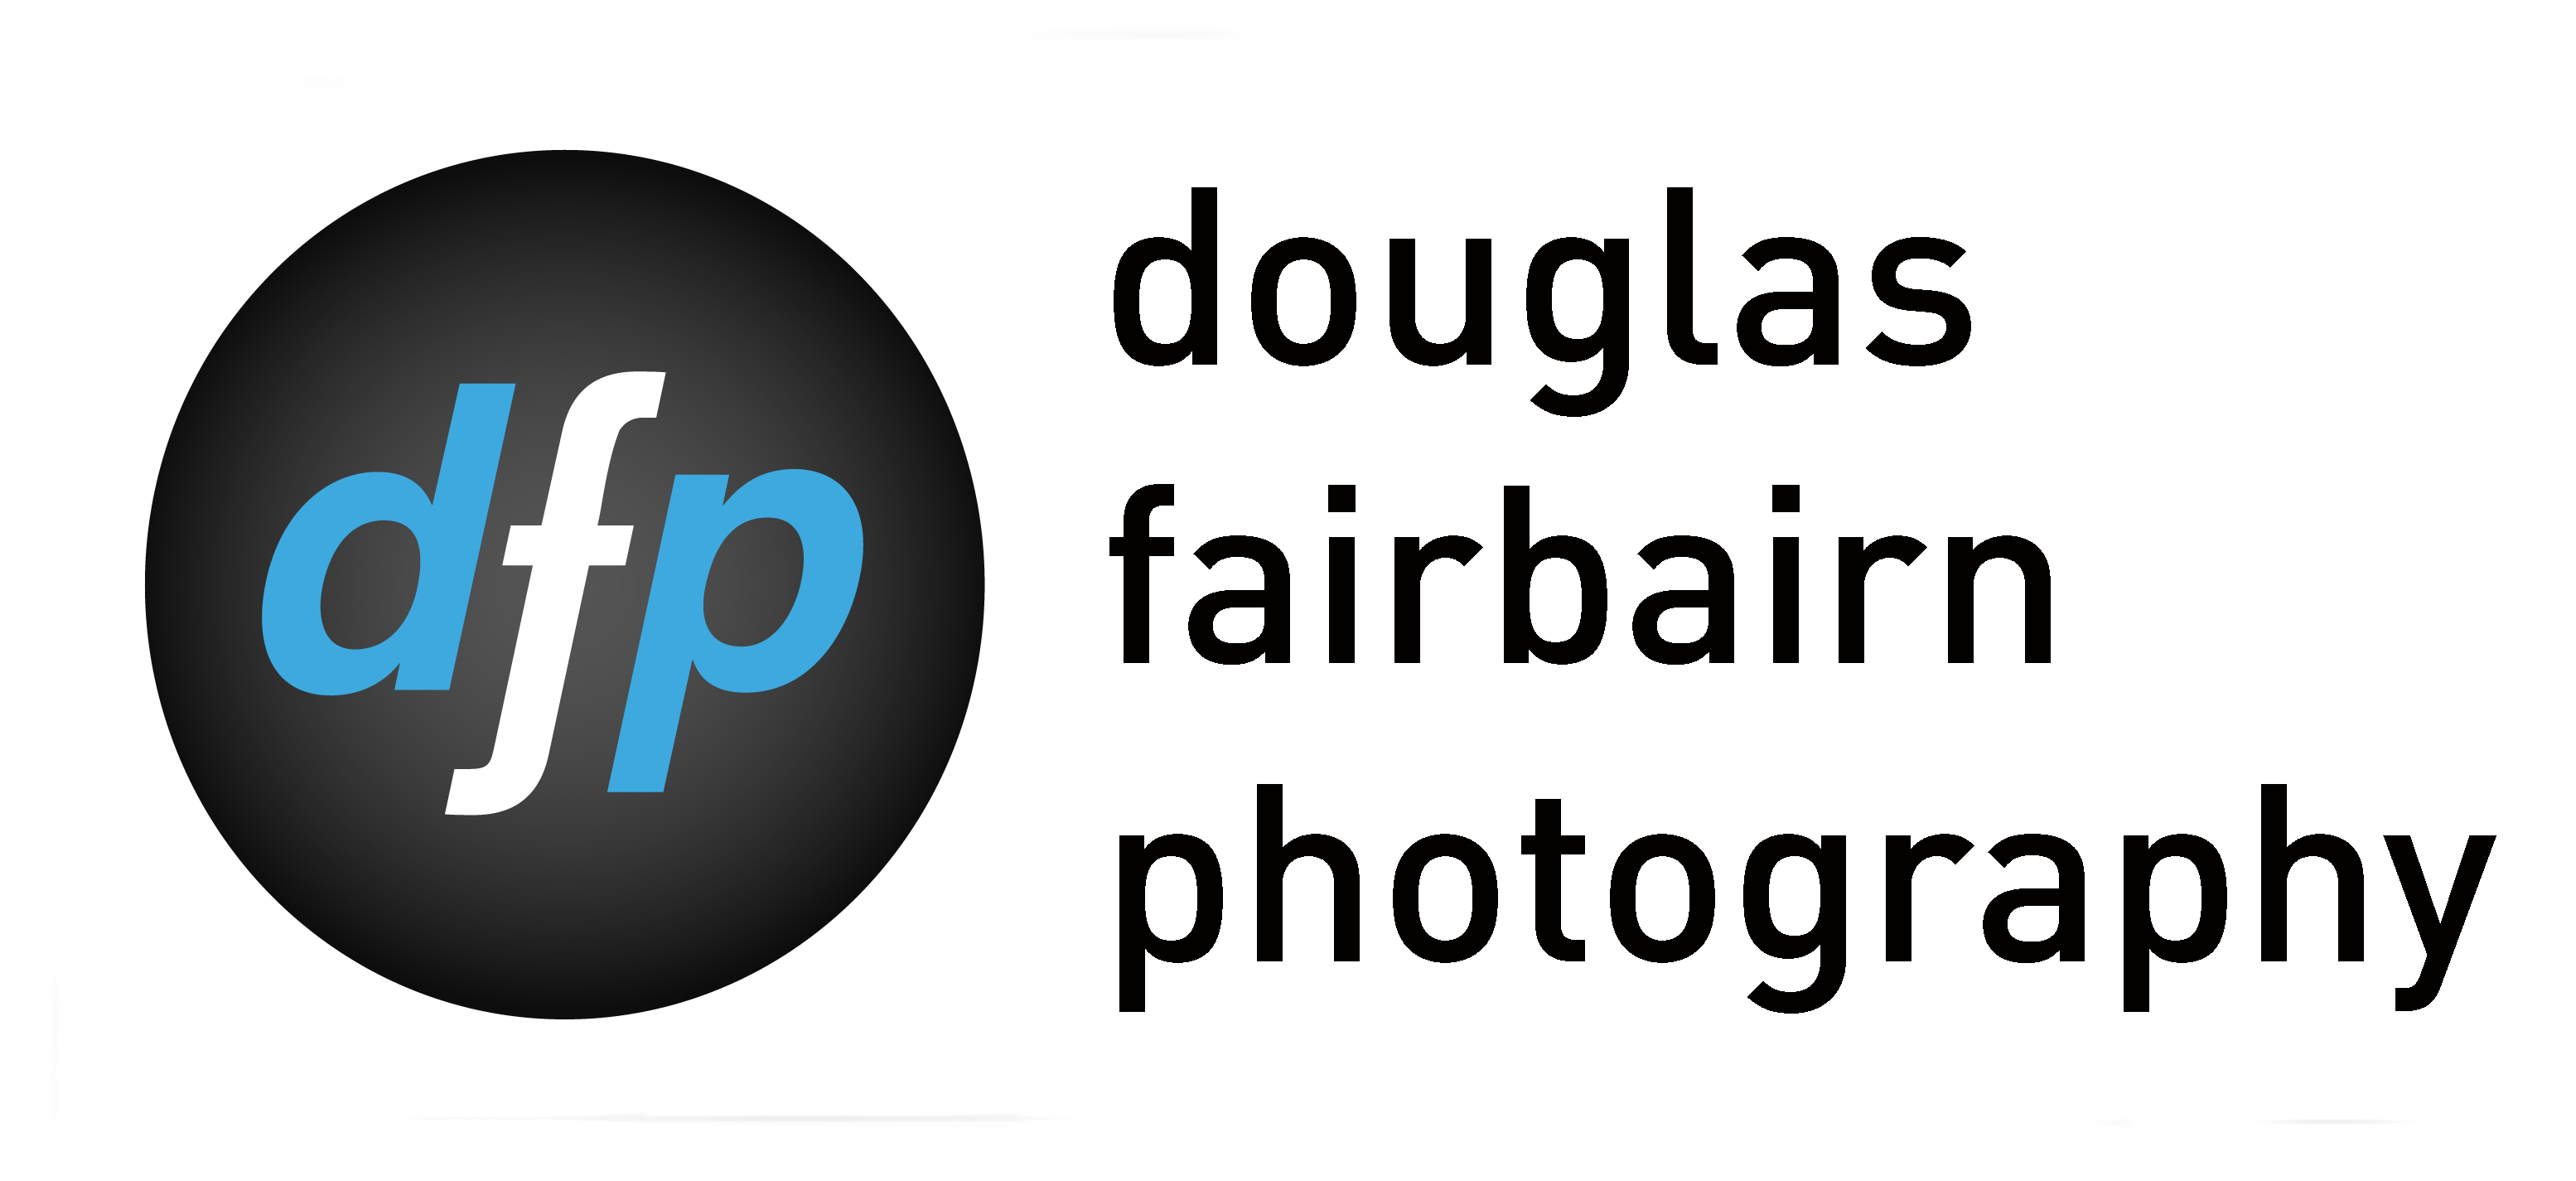 Douglas Fairbairn Photography